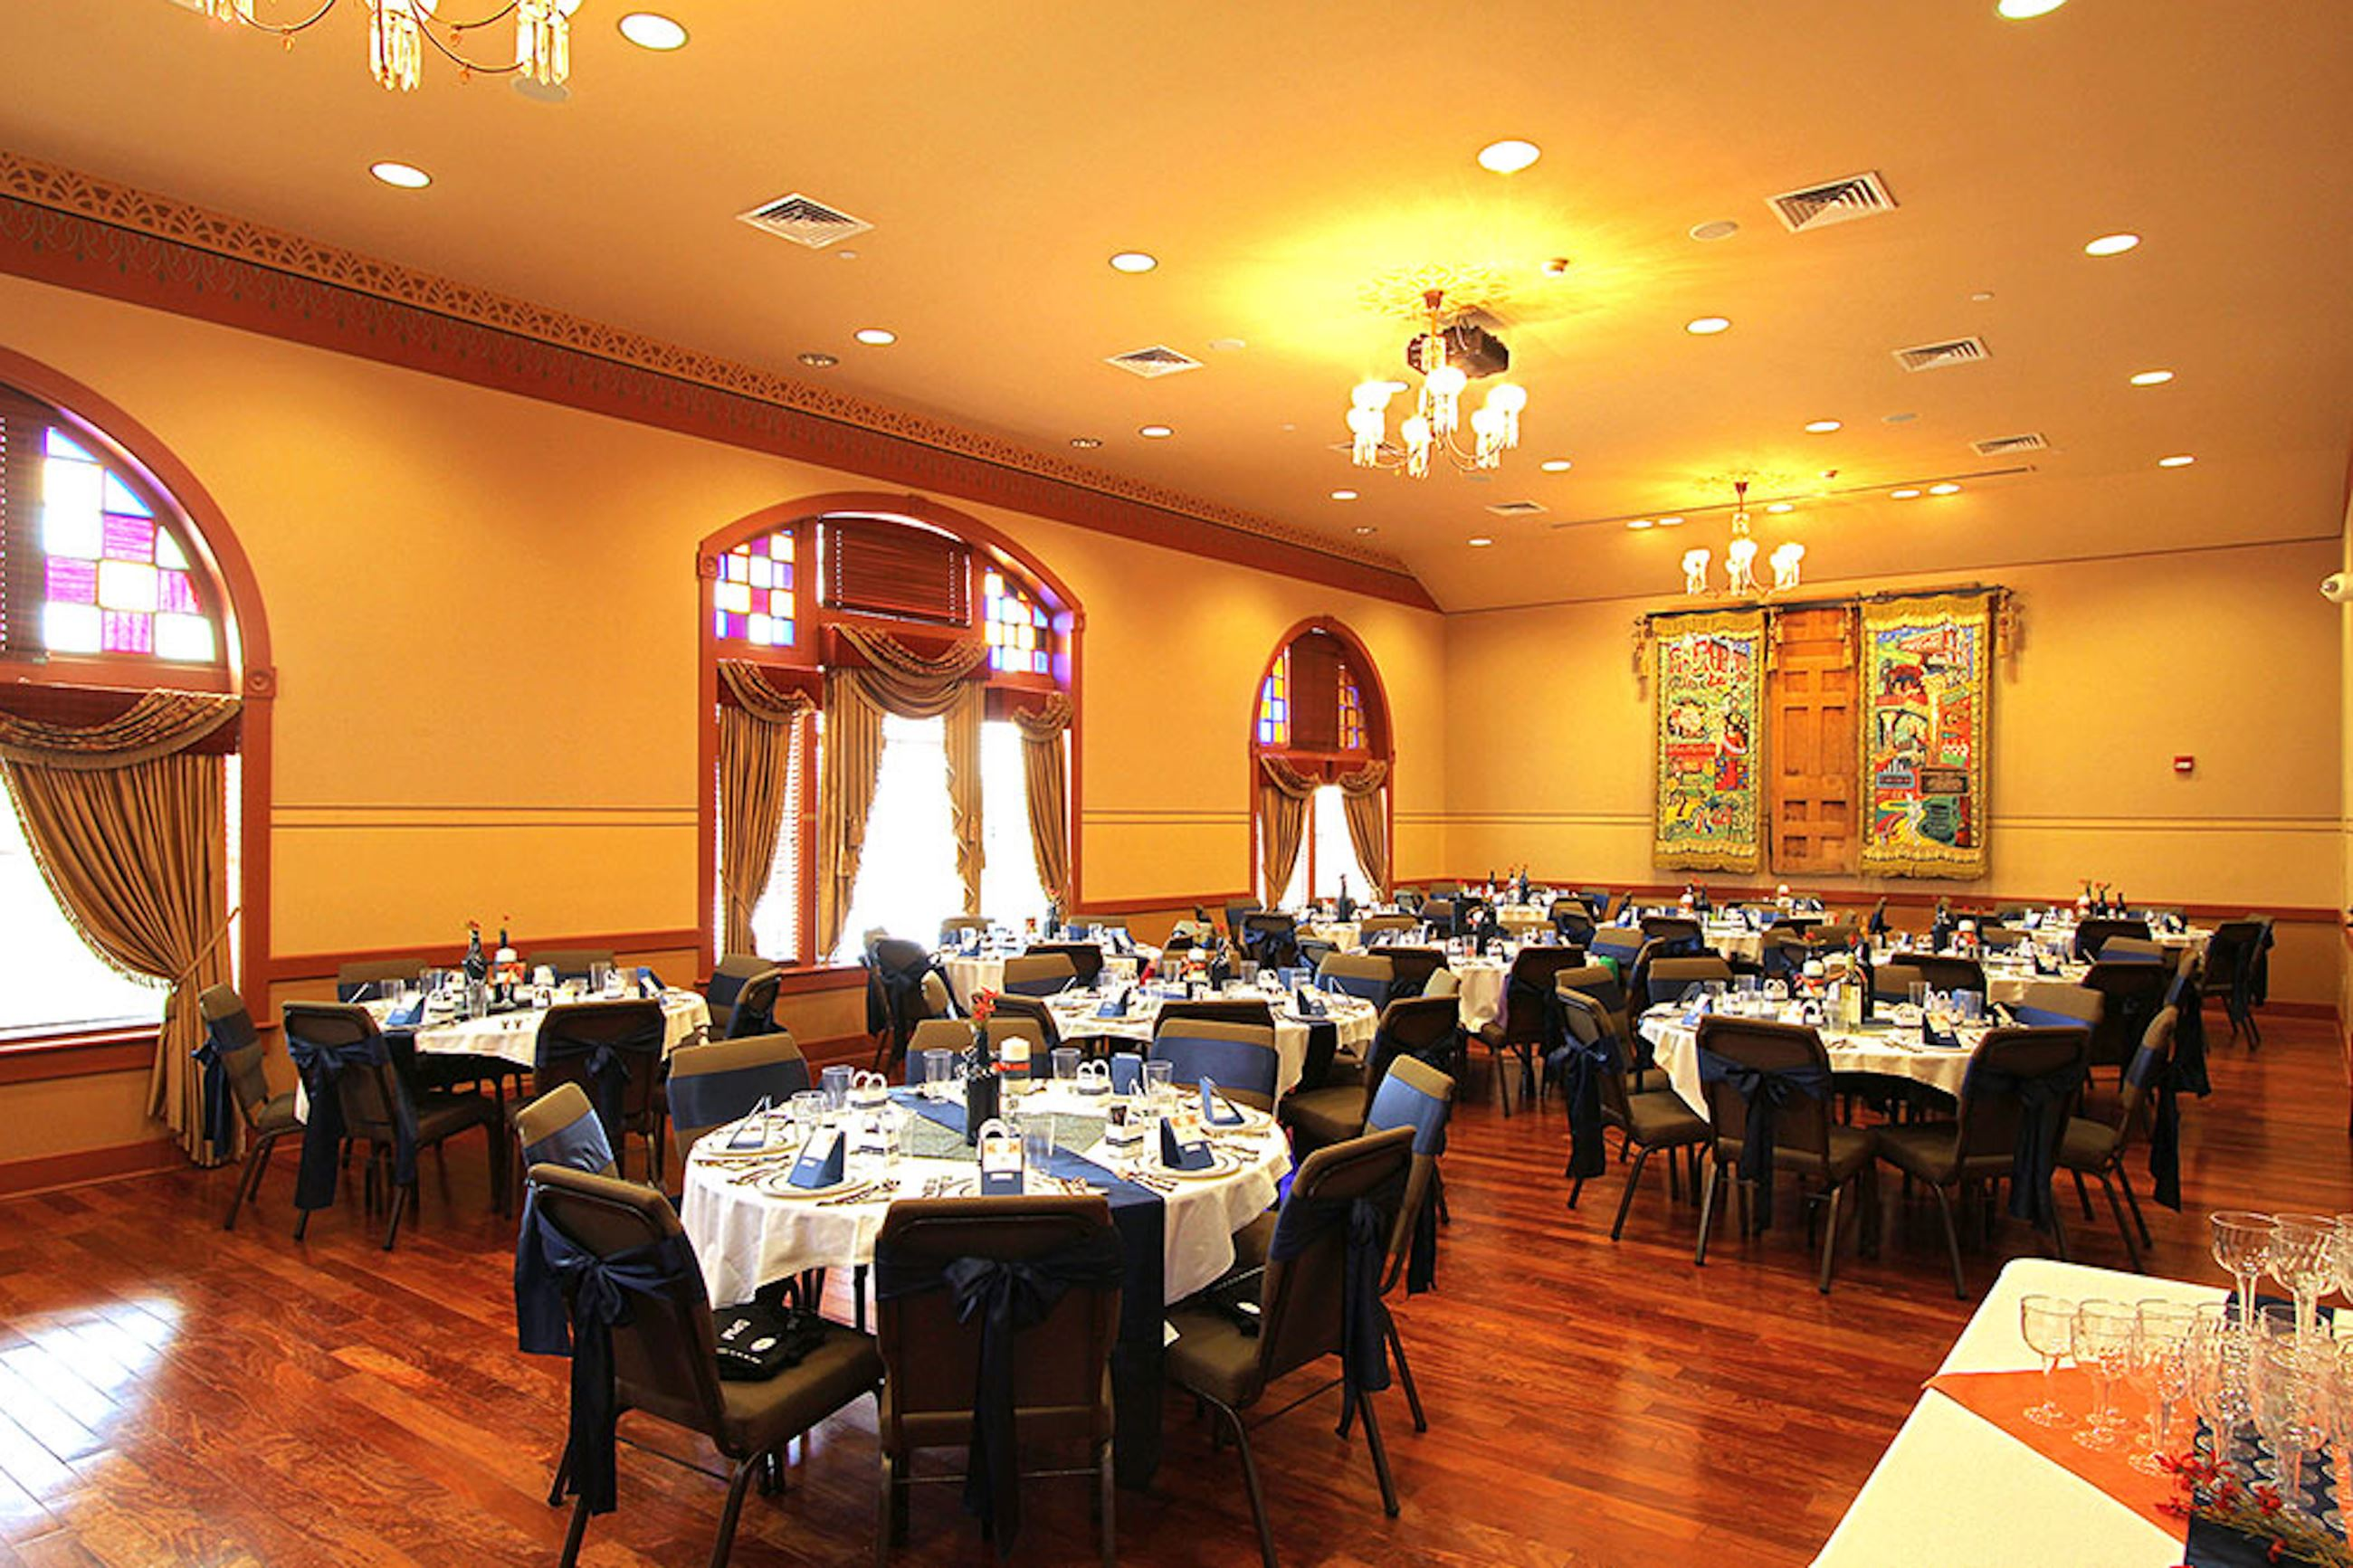 Historic ballroom with tall windows and wooden floor with tables set for a fancy meal